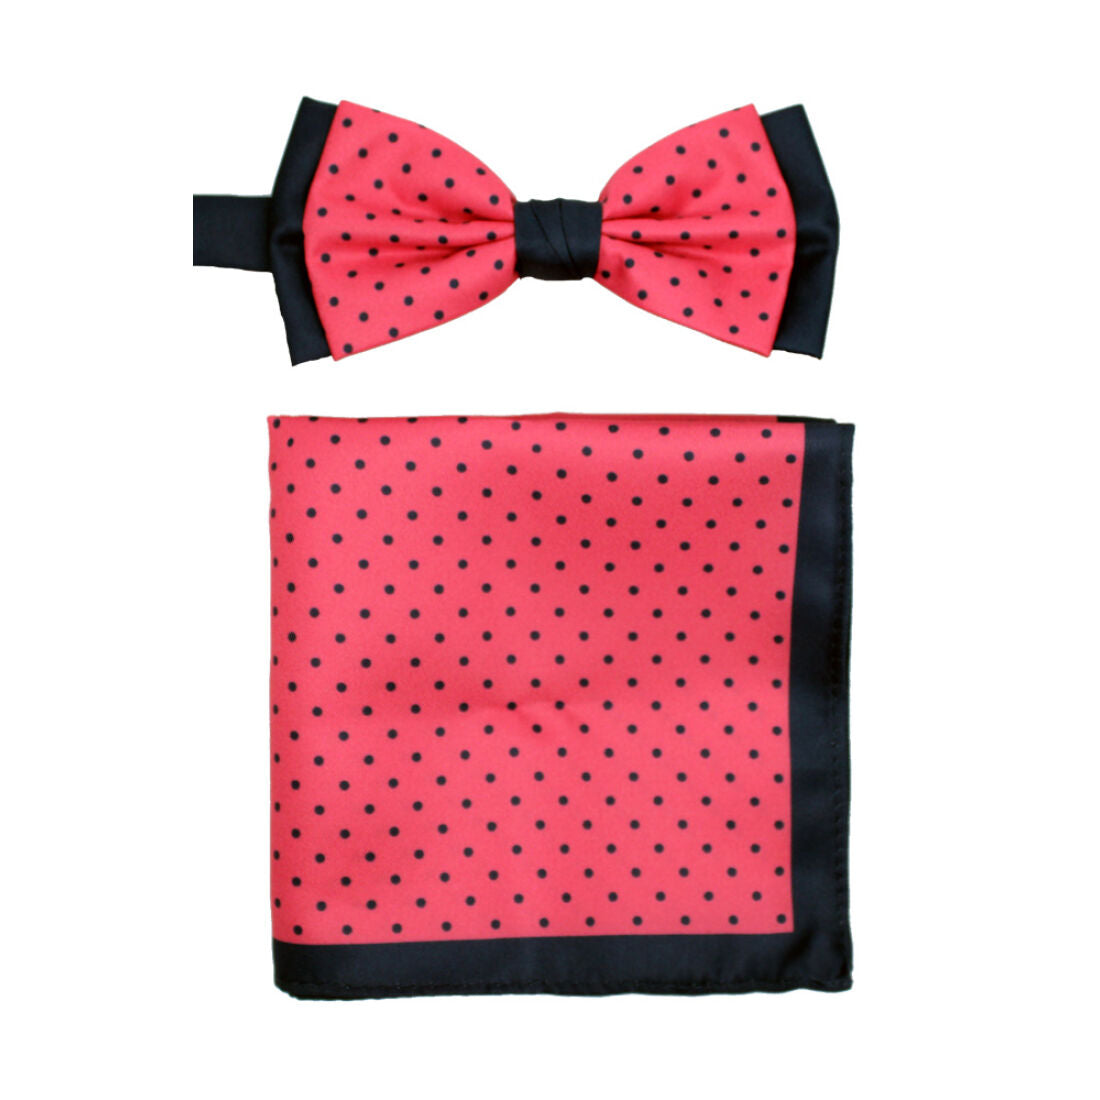 L.A. SMITH : Spotted Two Tone Pink Bow Tie Set